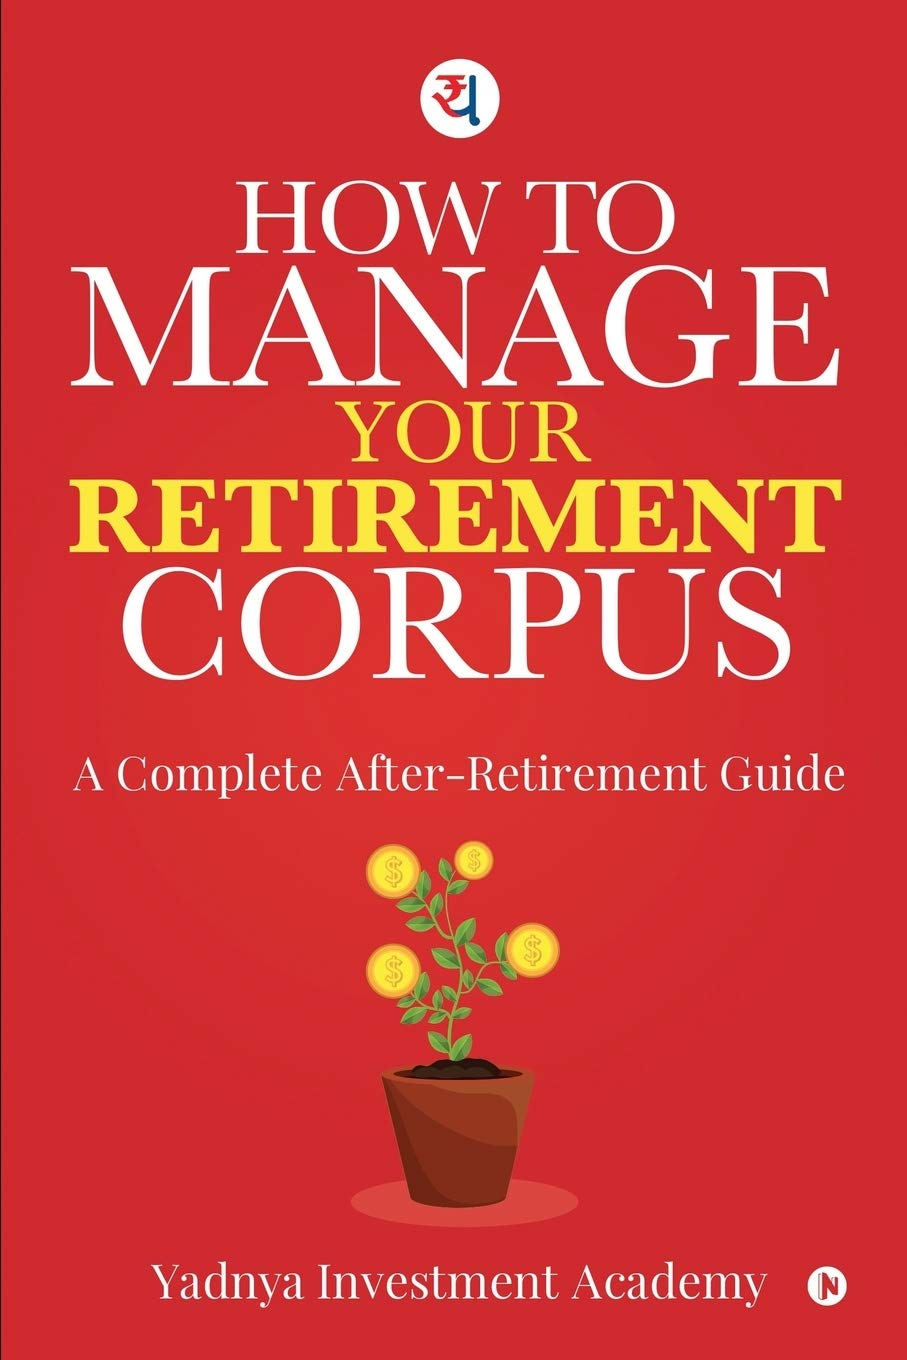 How to manage retirement